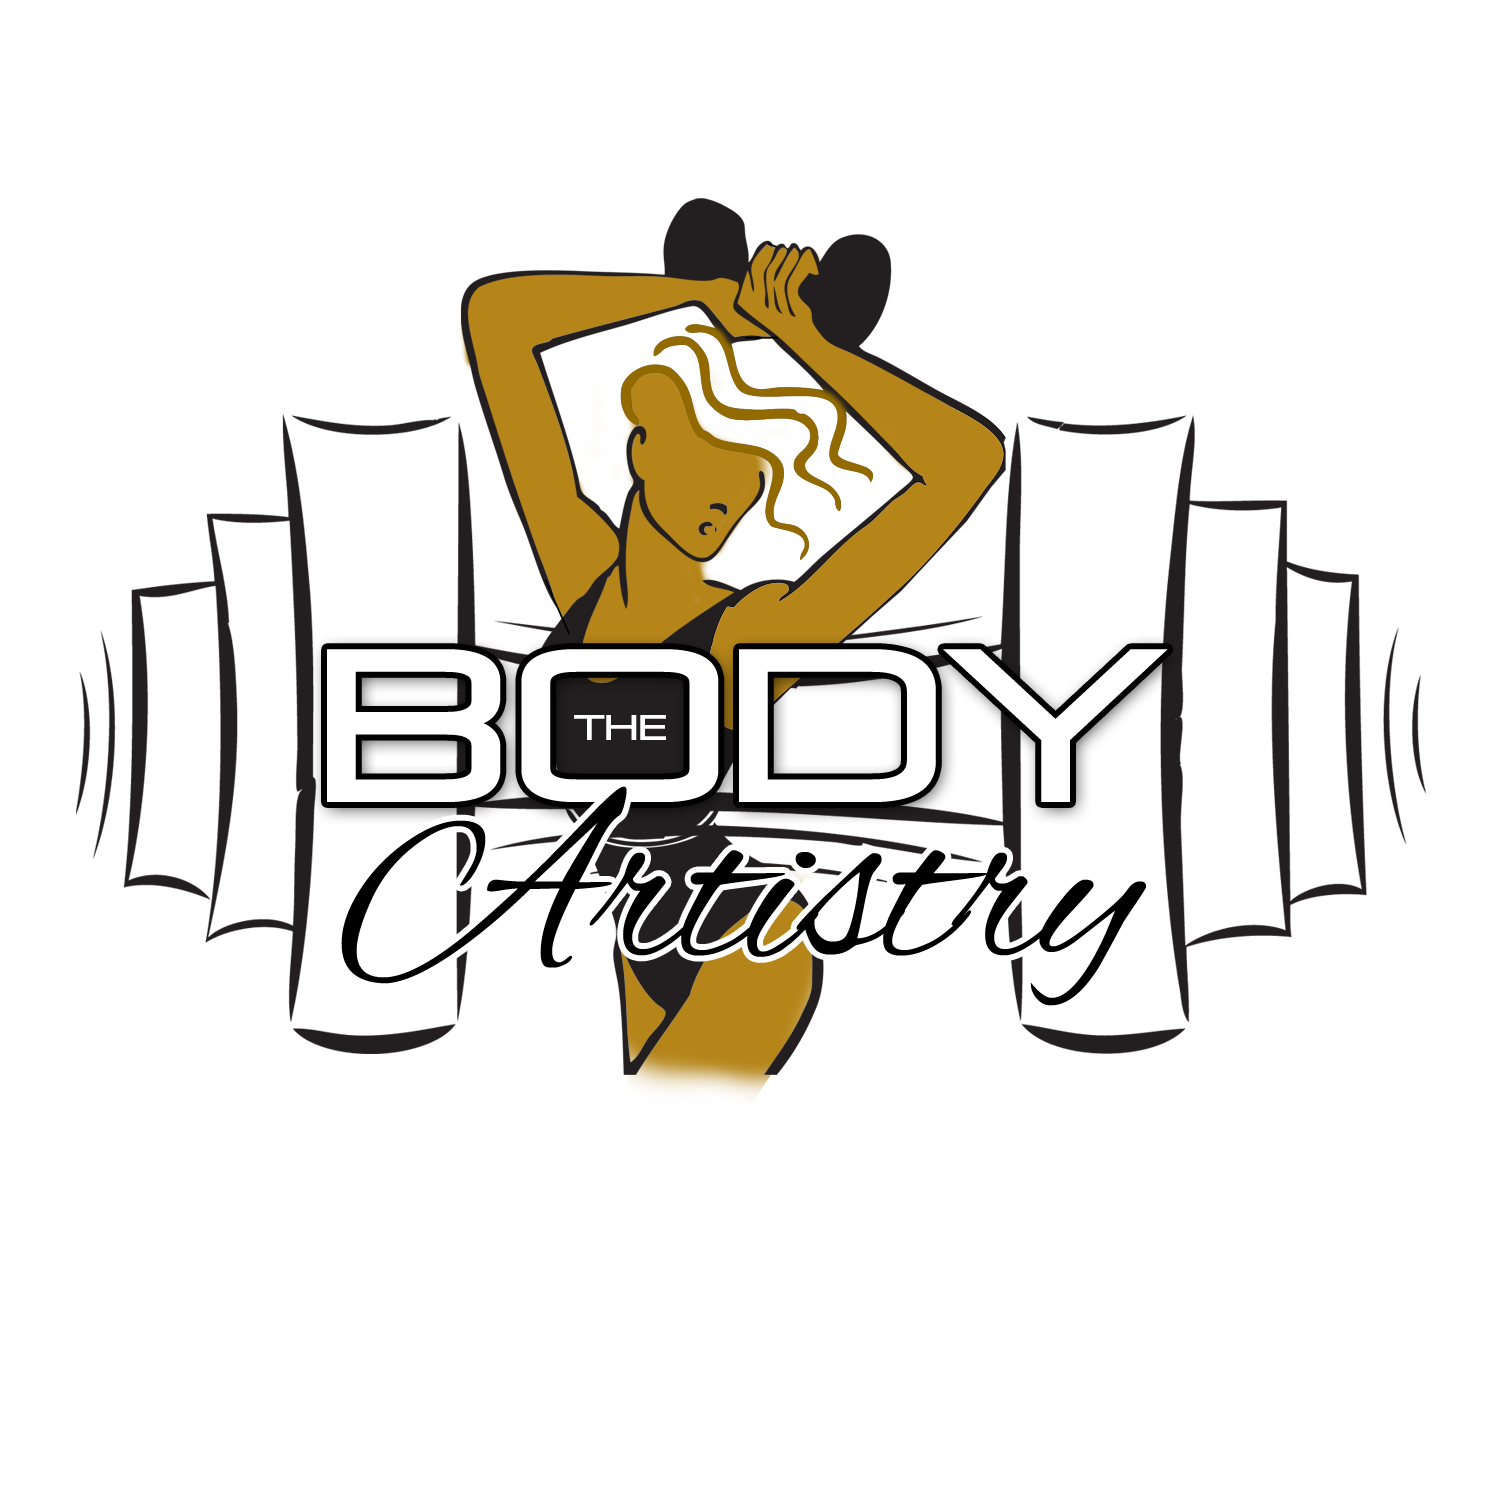 Tbafitness website the body. Energy clipart strength and conditioning